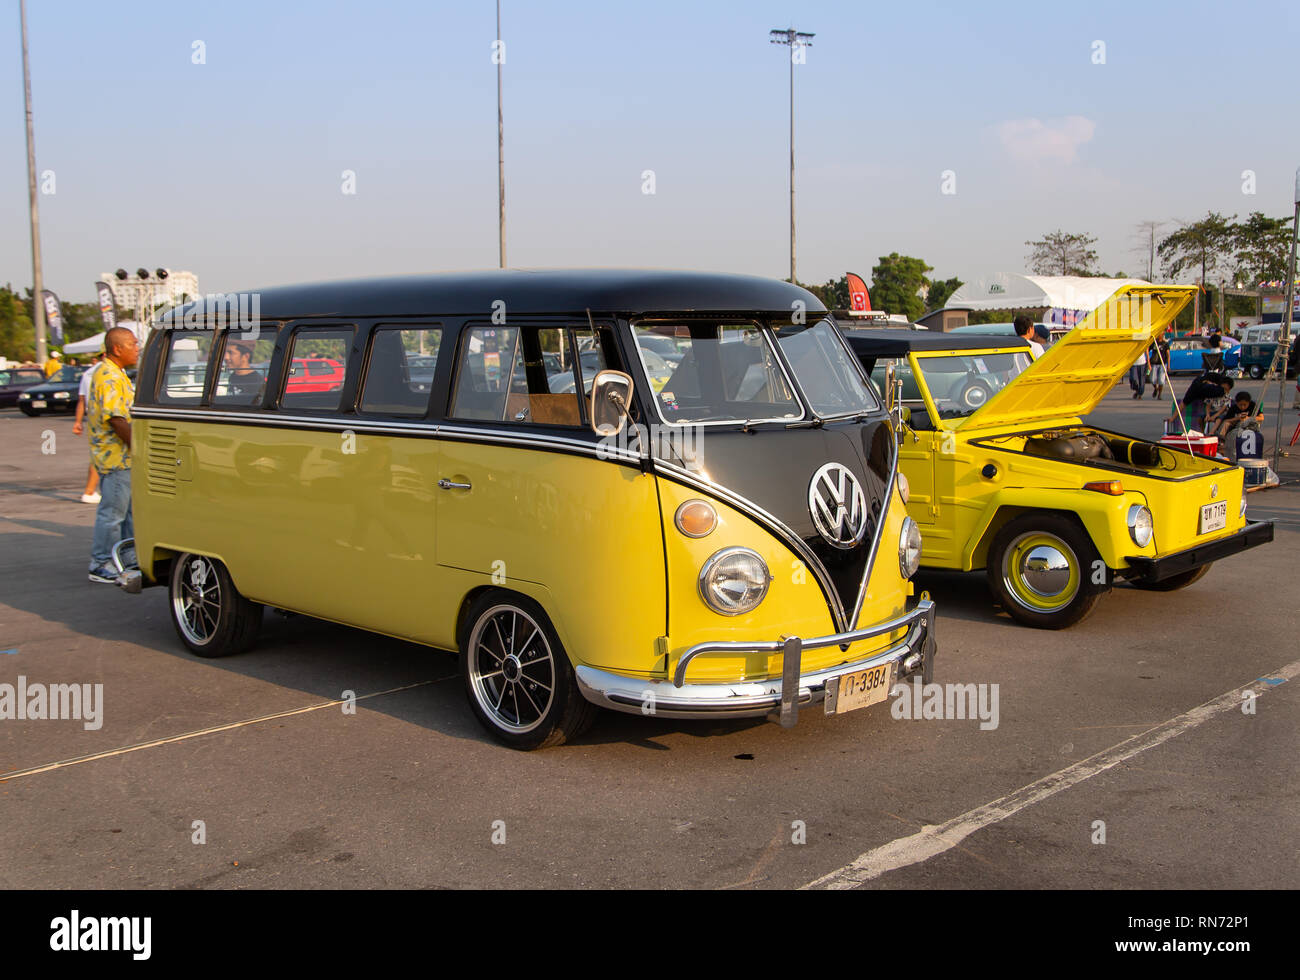 Yellow Volkswagen Camper Van High Resolution Stock Photography And Images Alamy